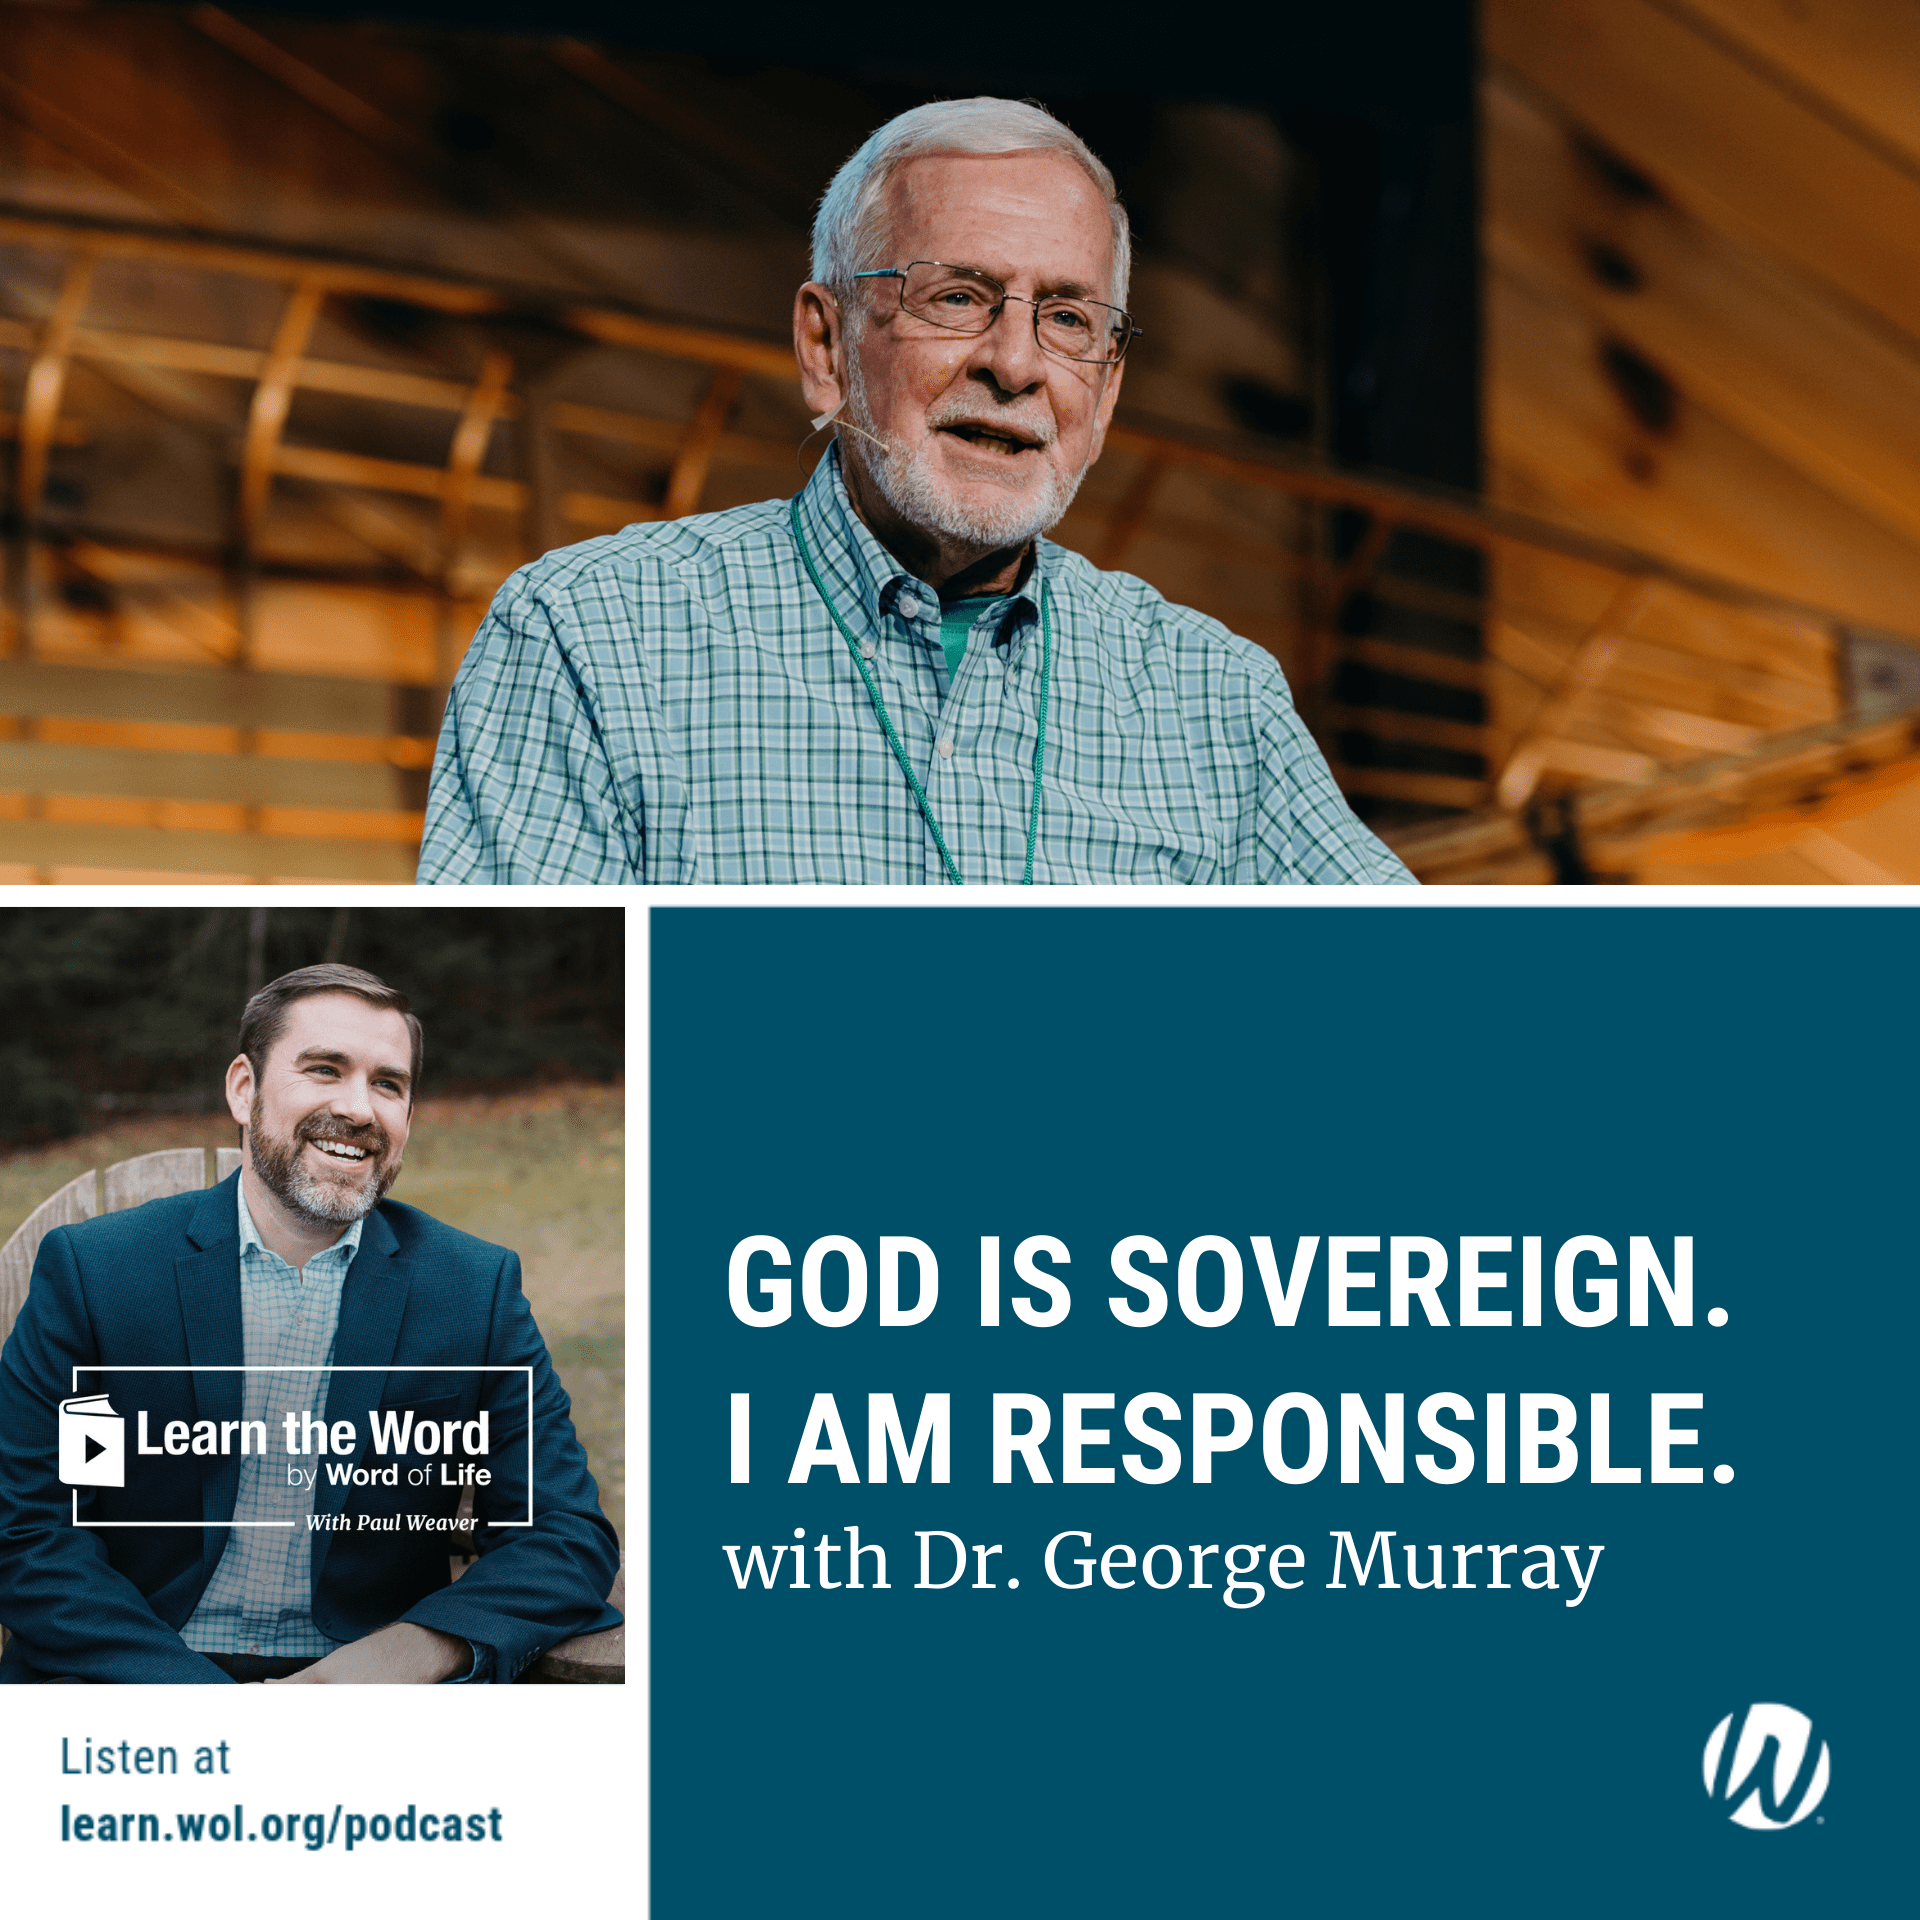 LTW192 - God is soverign. I am Responsible - with Dr. George Murray (1)